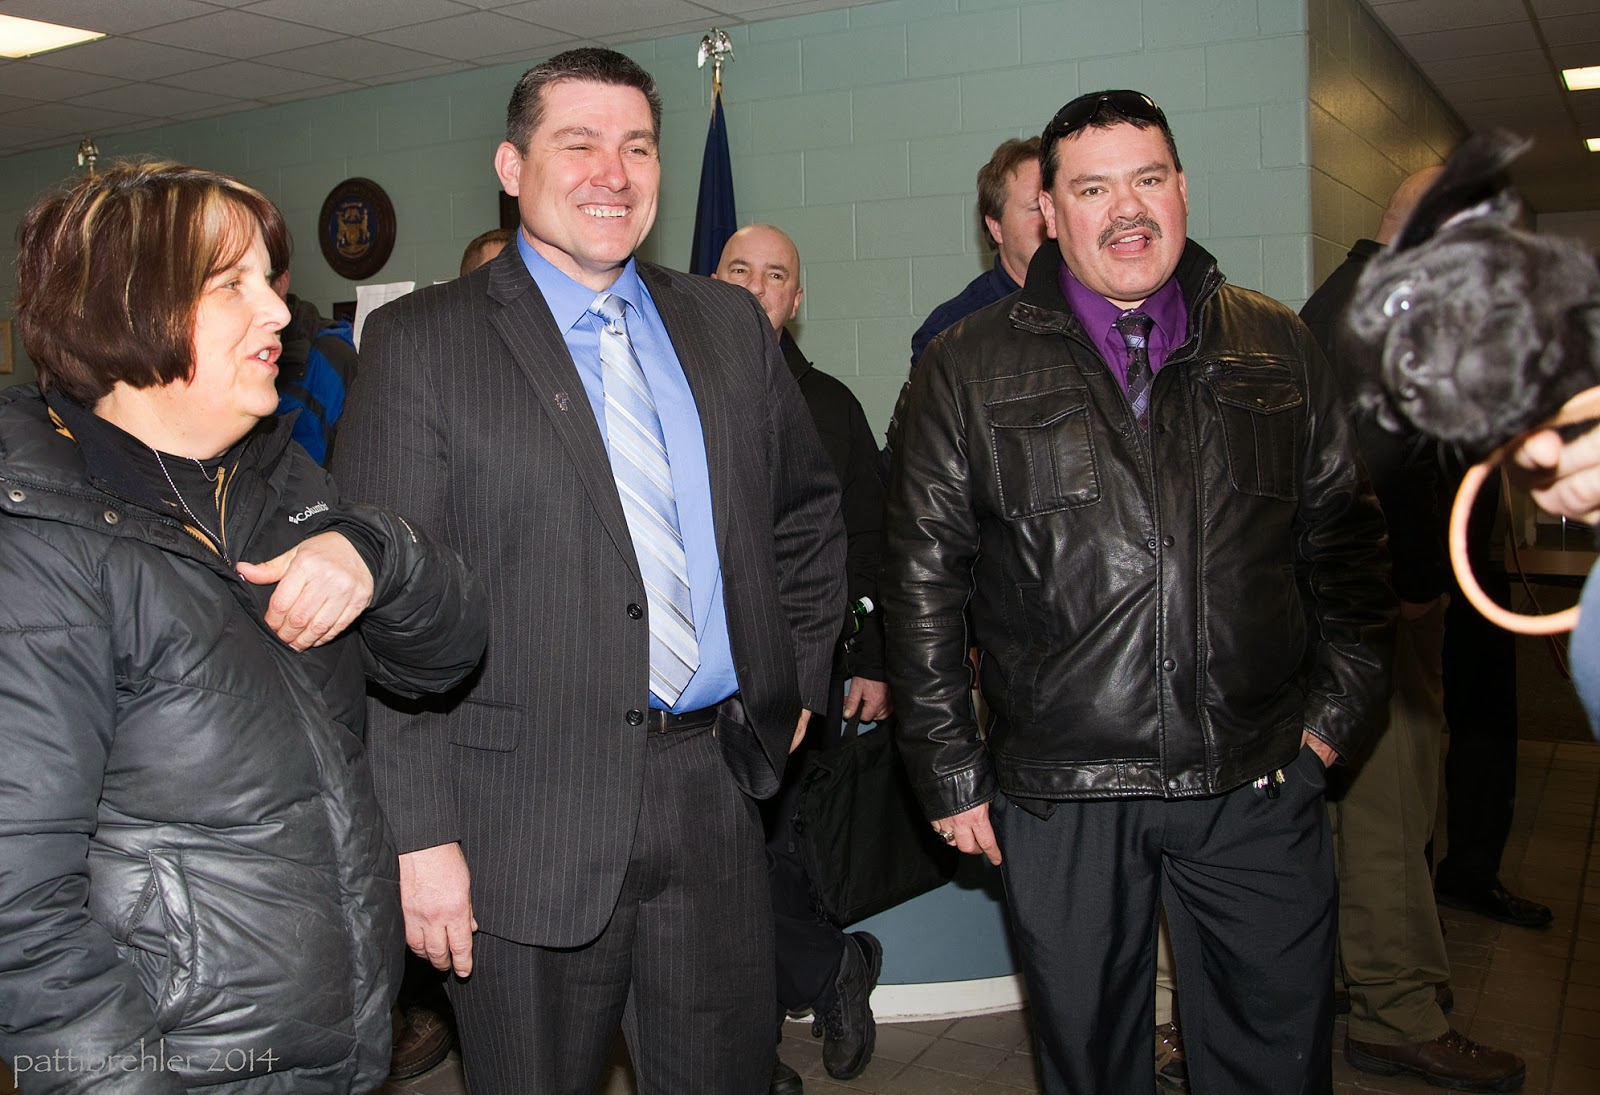 A short woman with short brown hair is standing on the left side. Next to her is a man in a suit, he is the warden. Next to him is another man with a mustache and a black leather jacket. On the far right side is the out-of-focus face of a small black lab. Photo bomb!